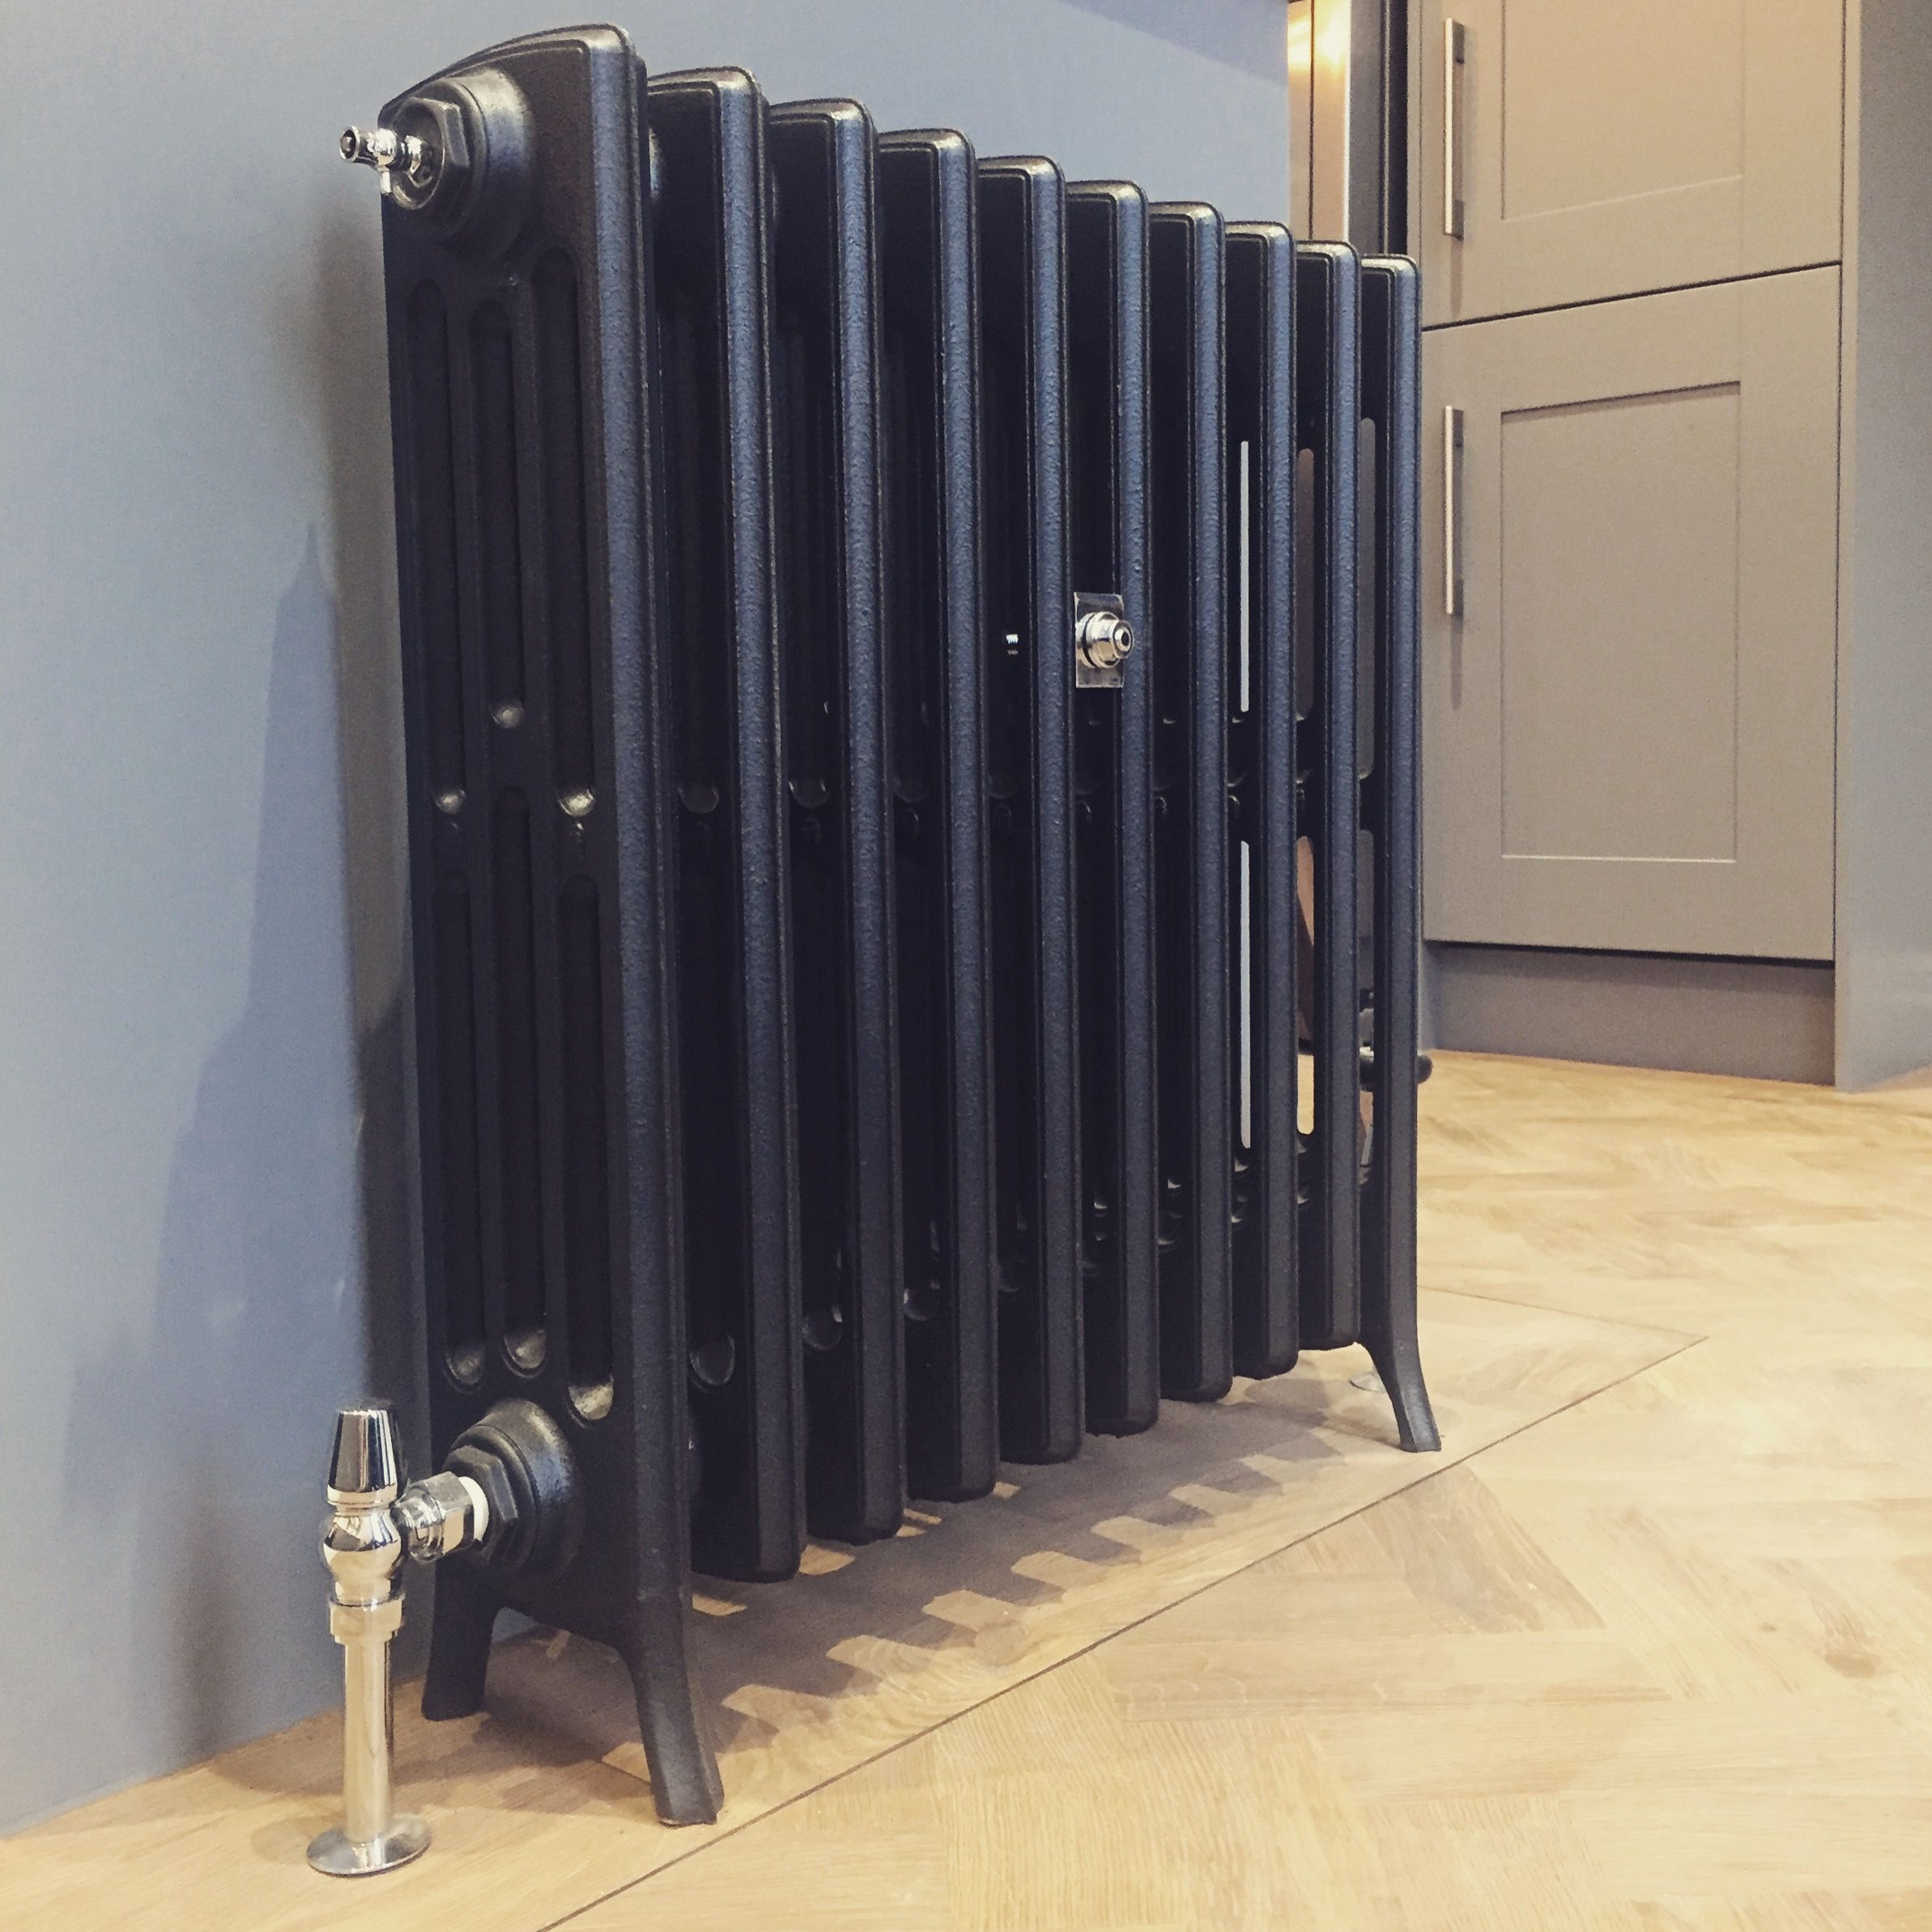 Graphite Grey Cast Iron Radiator On Kitchen Island